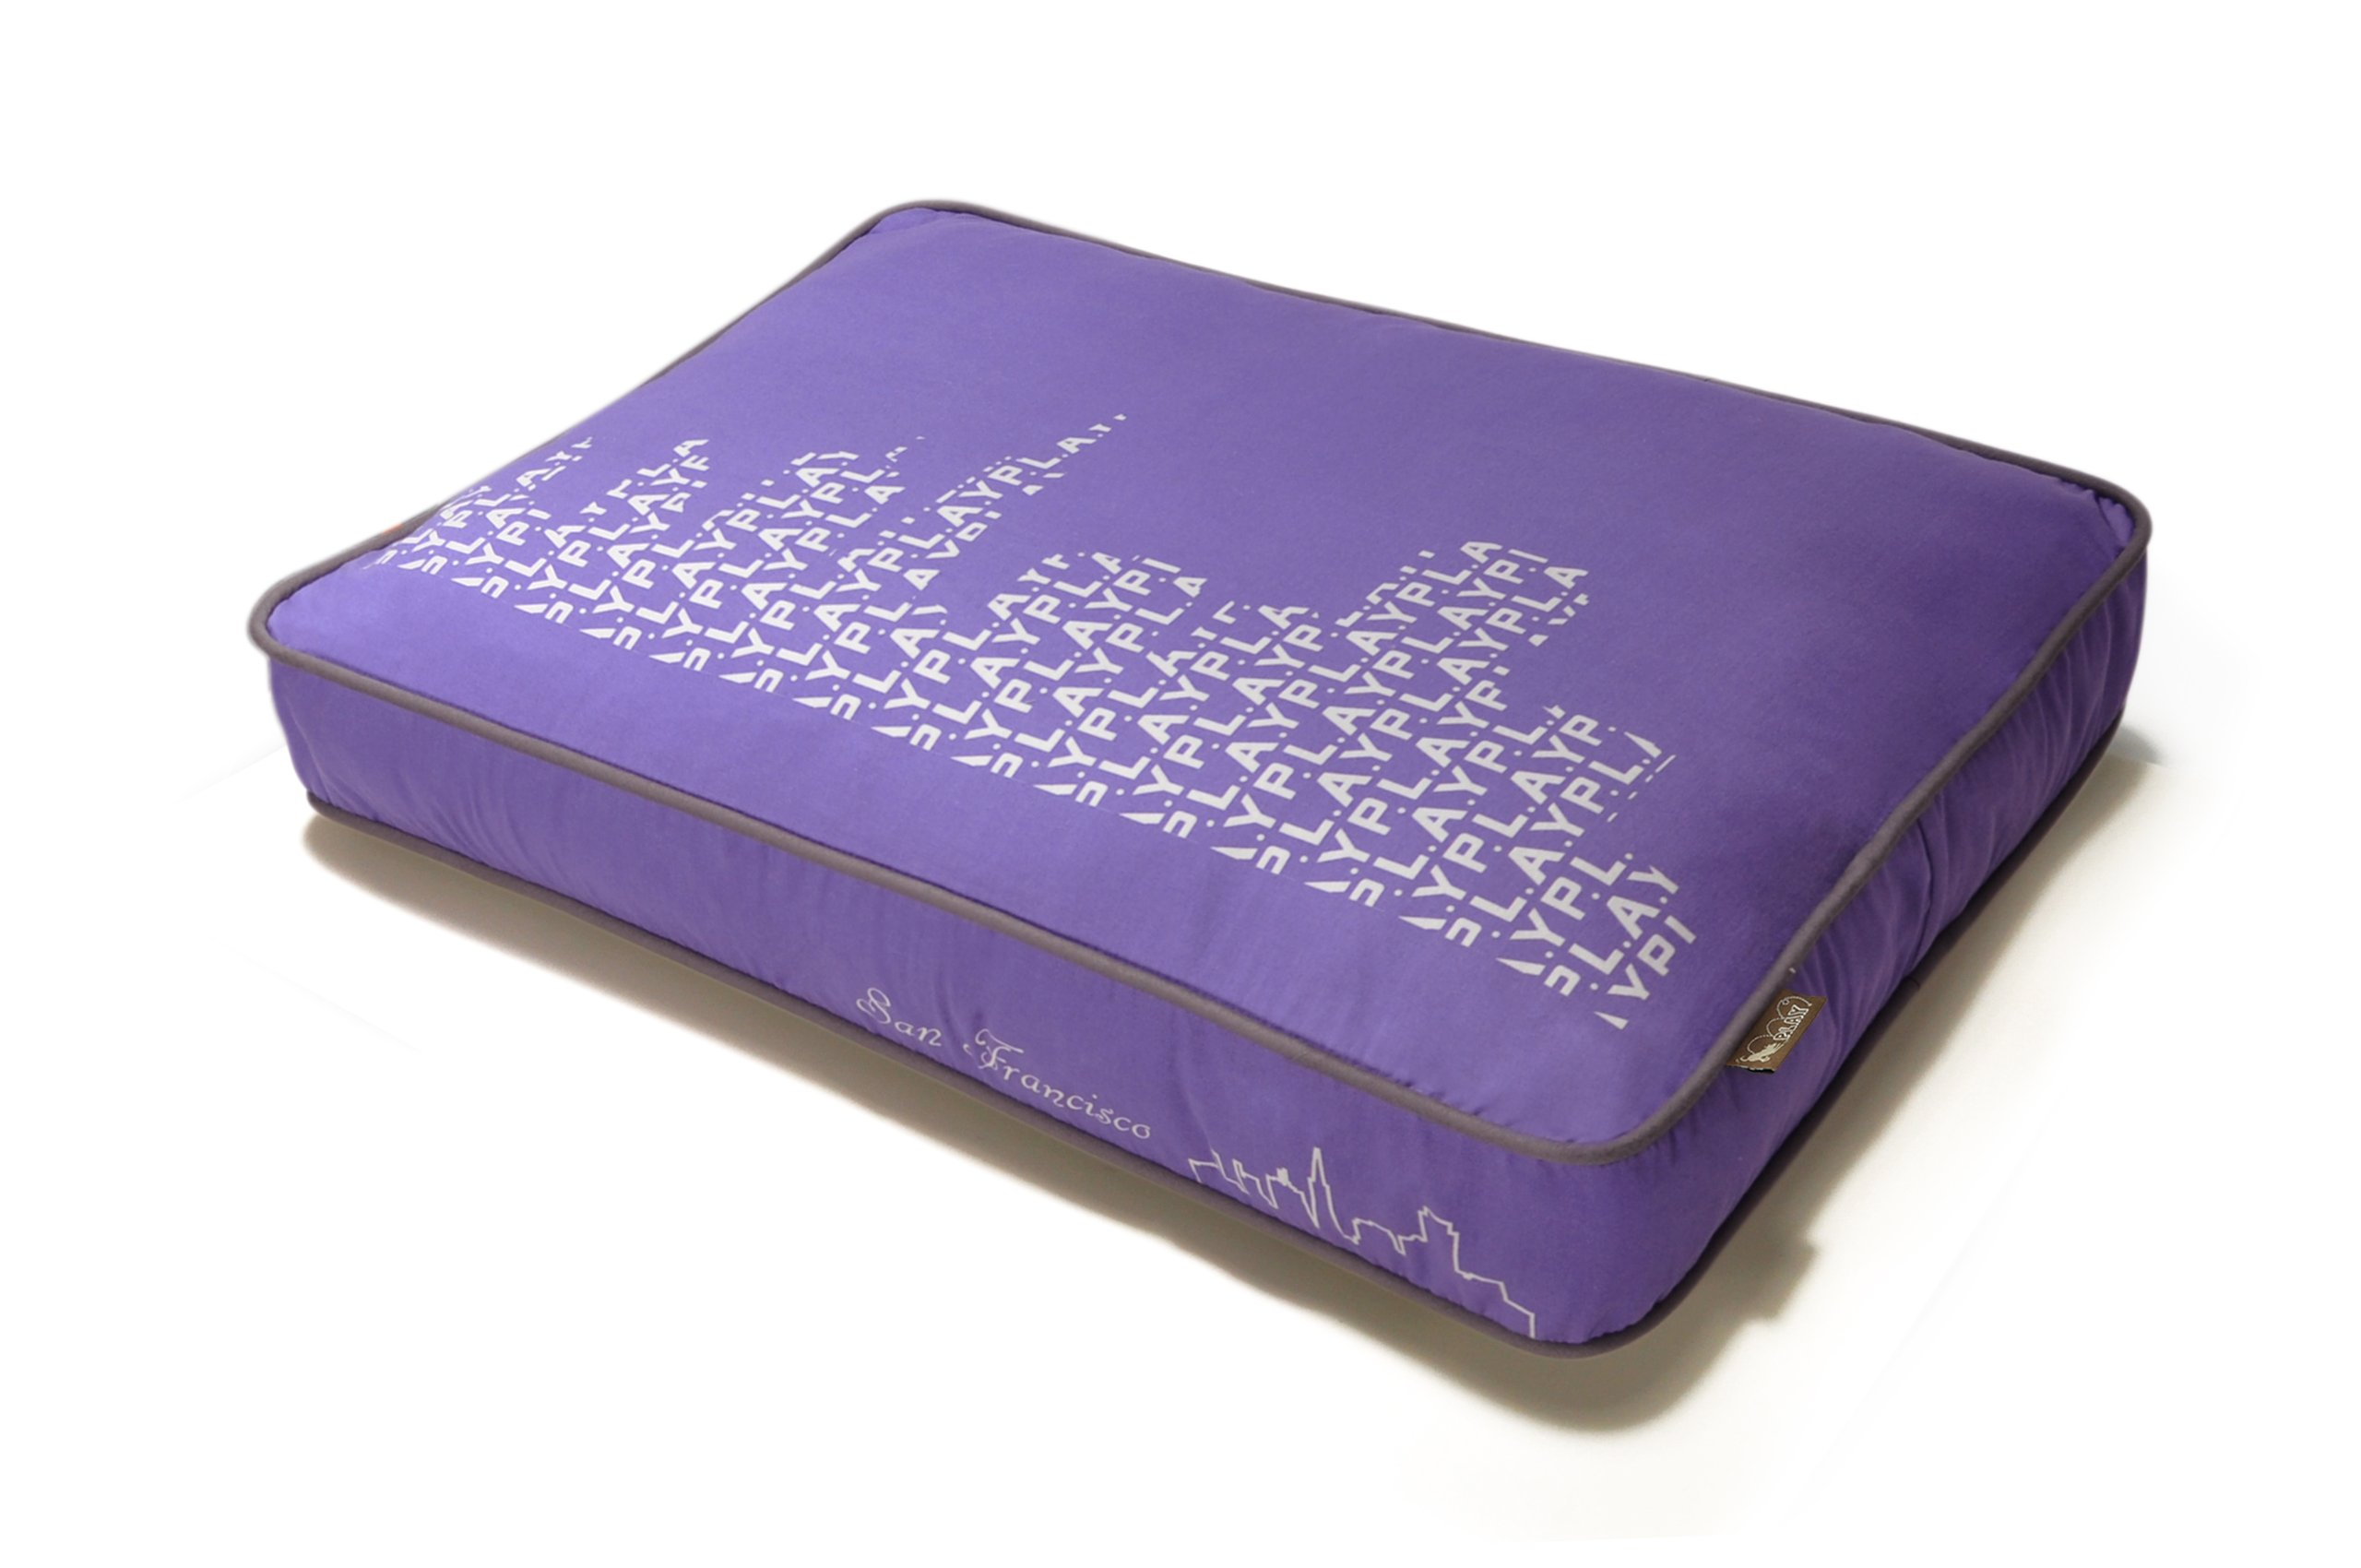 P.L.A.Y. Rectangular Bed with Eco-Friendly Filler and 100-Percent Cotton Cover, Purple/Sfyline